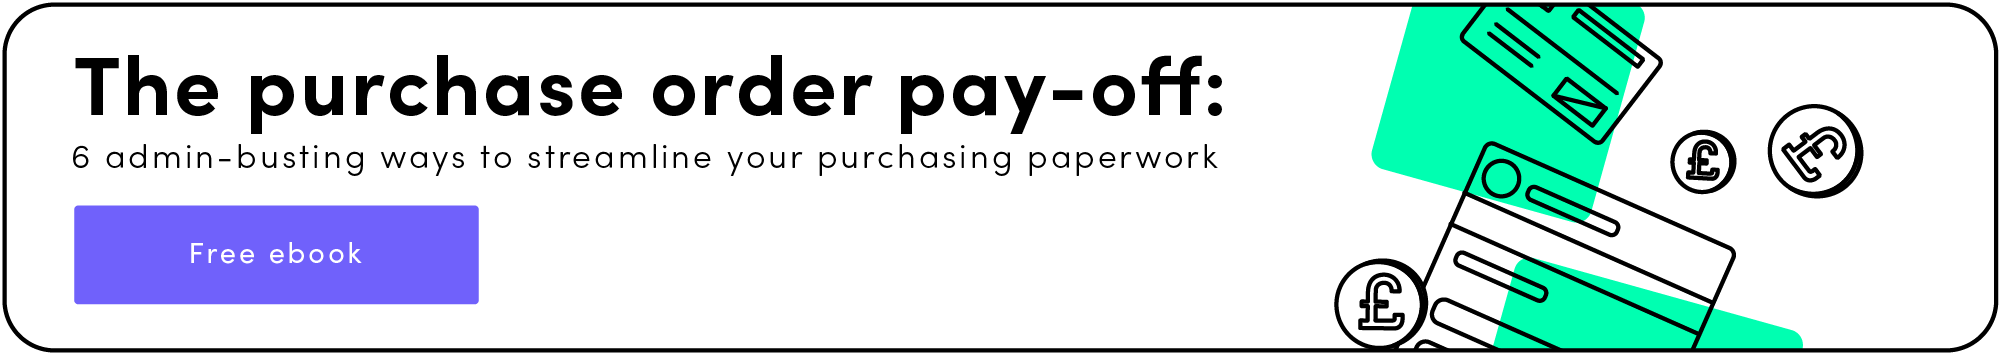 Download your copy of The Purchase Order Payoff